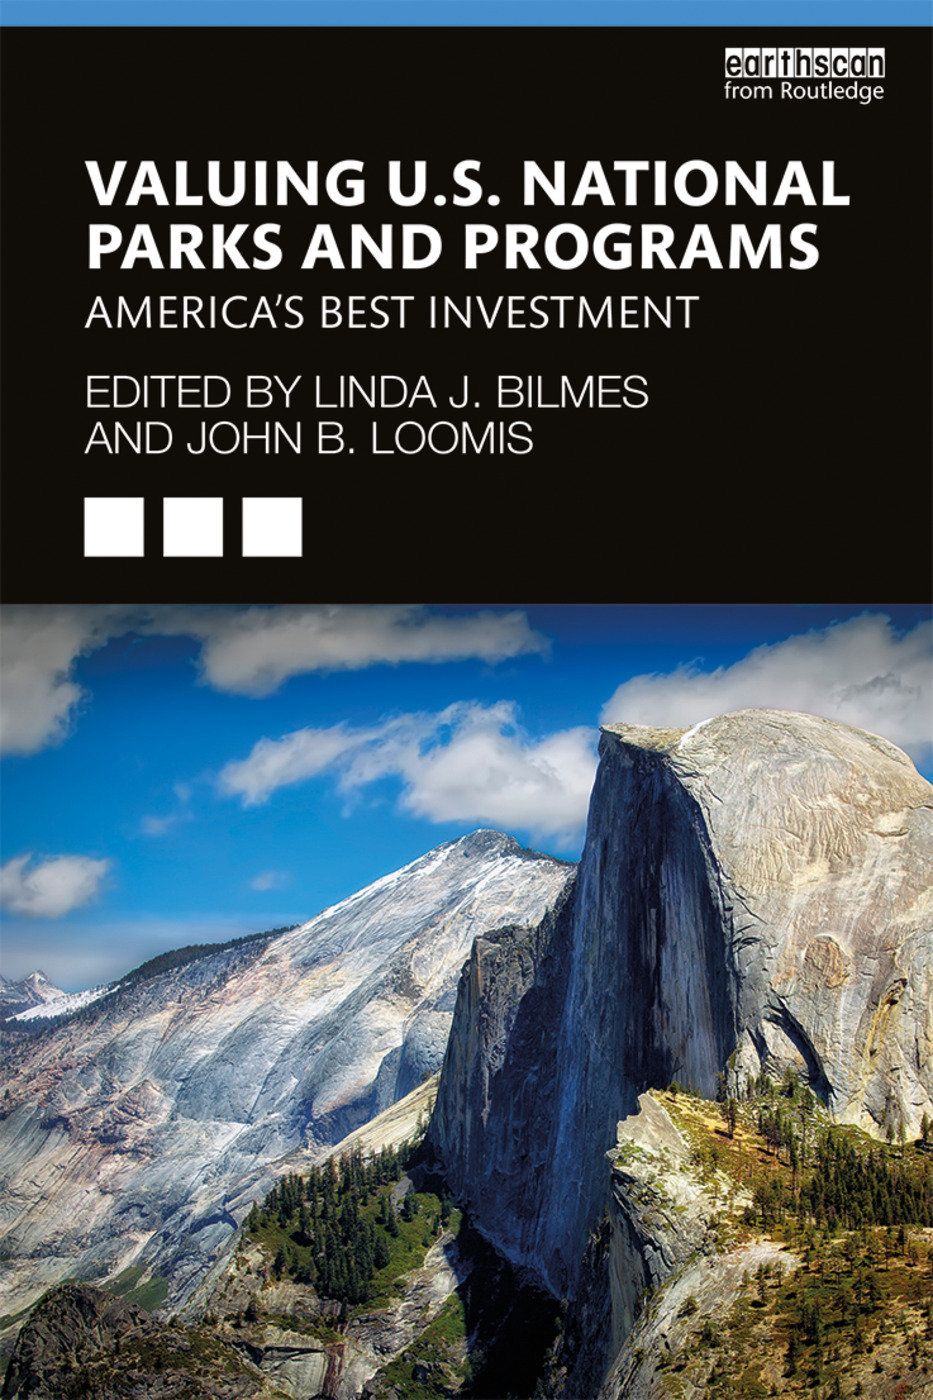 Valuing U.S. National Parks and Programs: America's Best Investment book cover